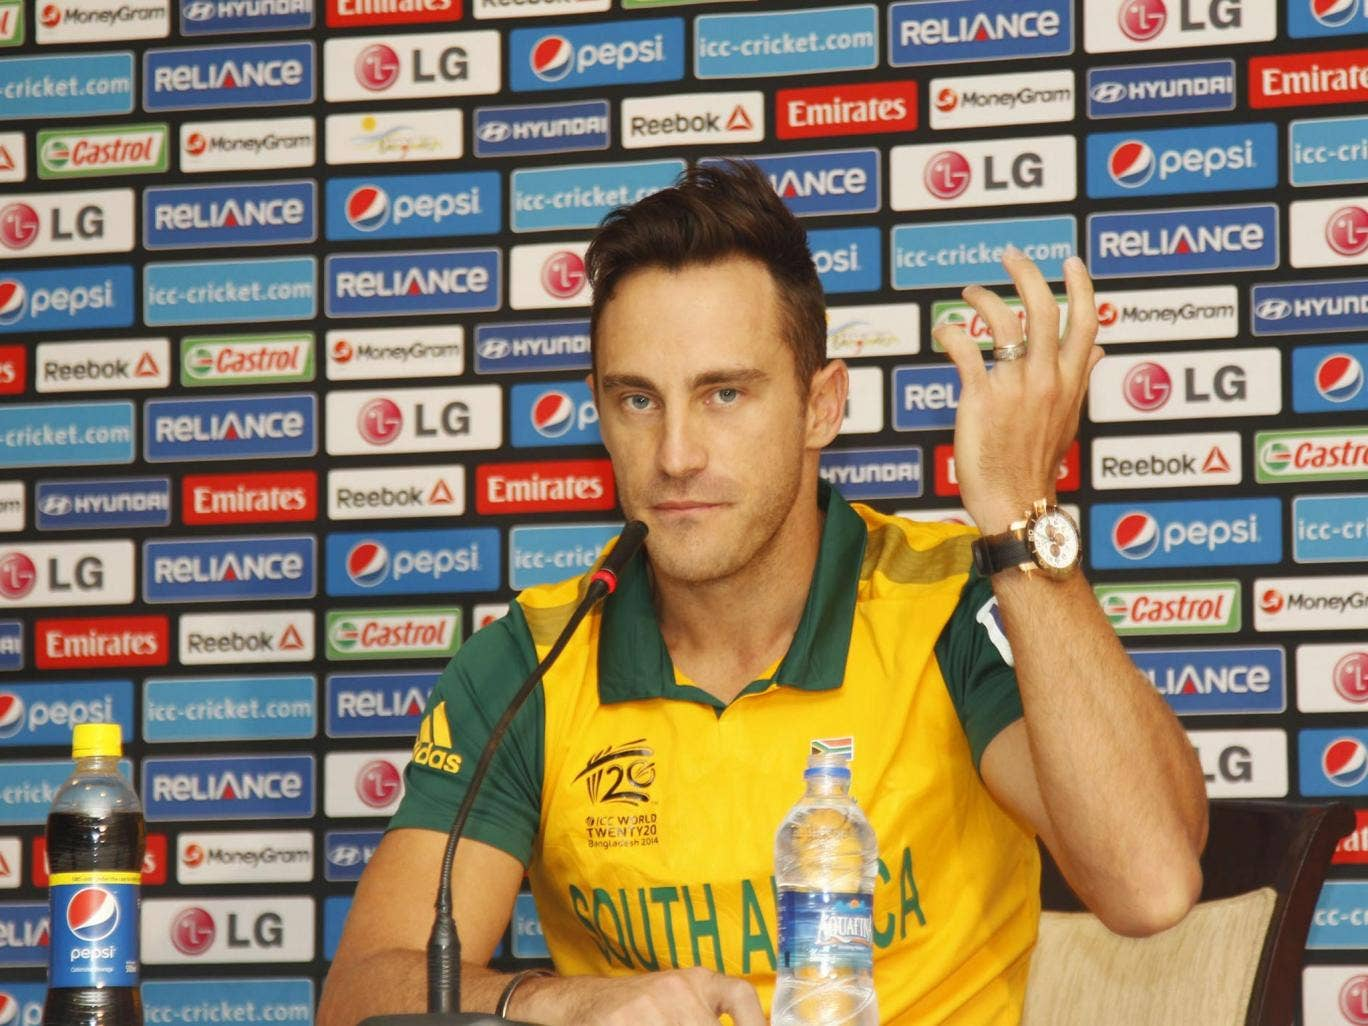 South Africa's captain Faf du Plessis has been banned due to his team's slow over rate